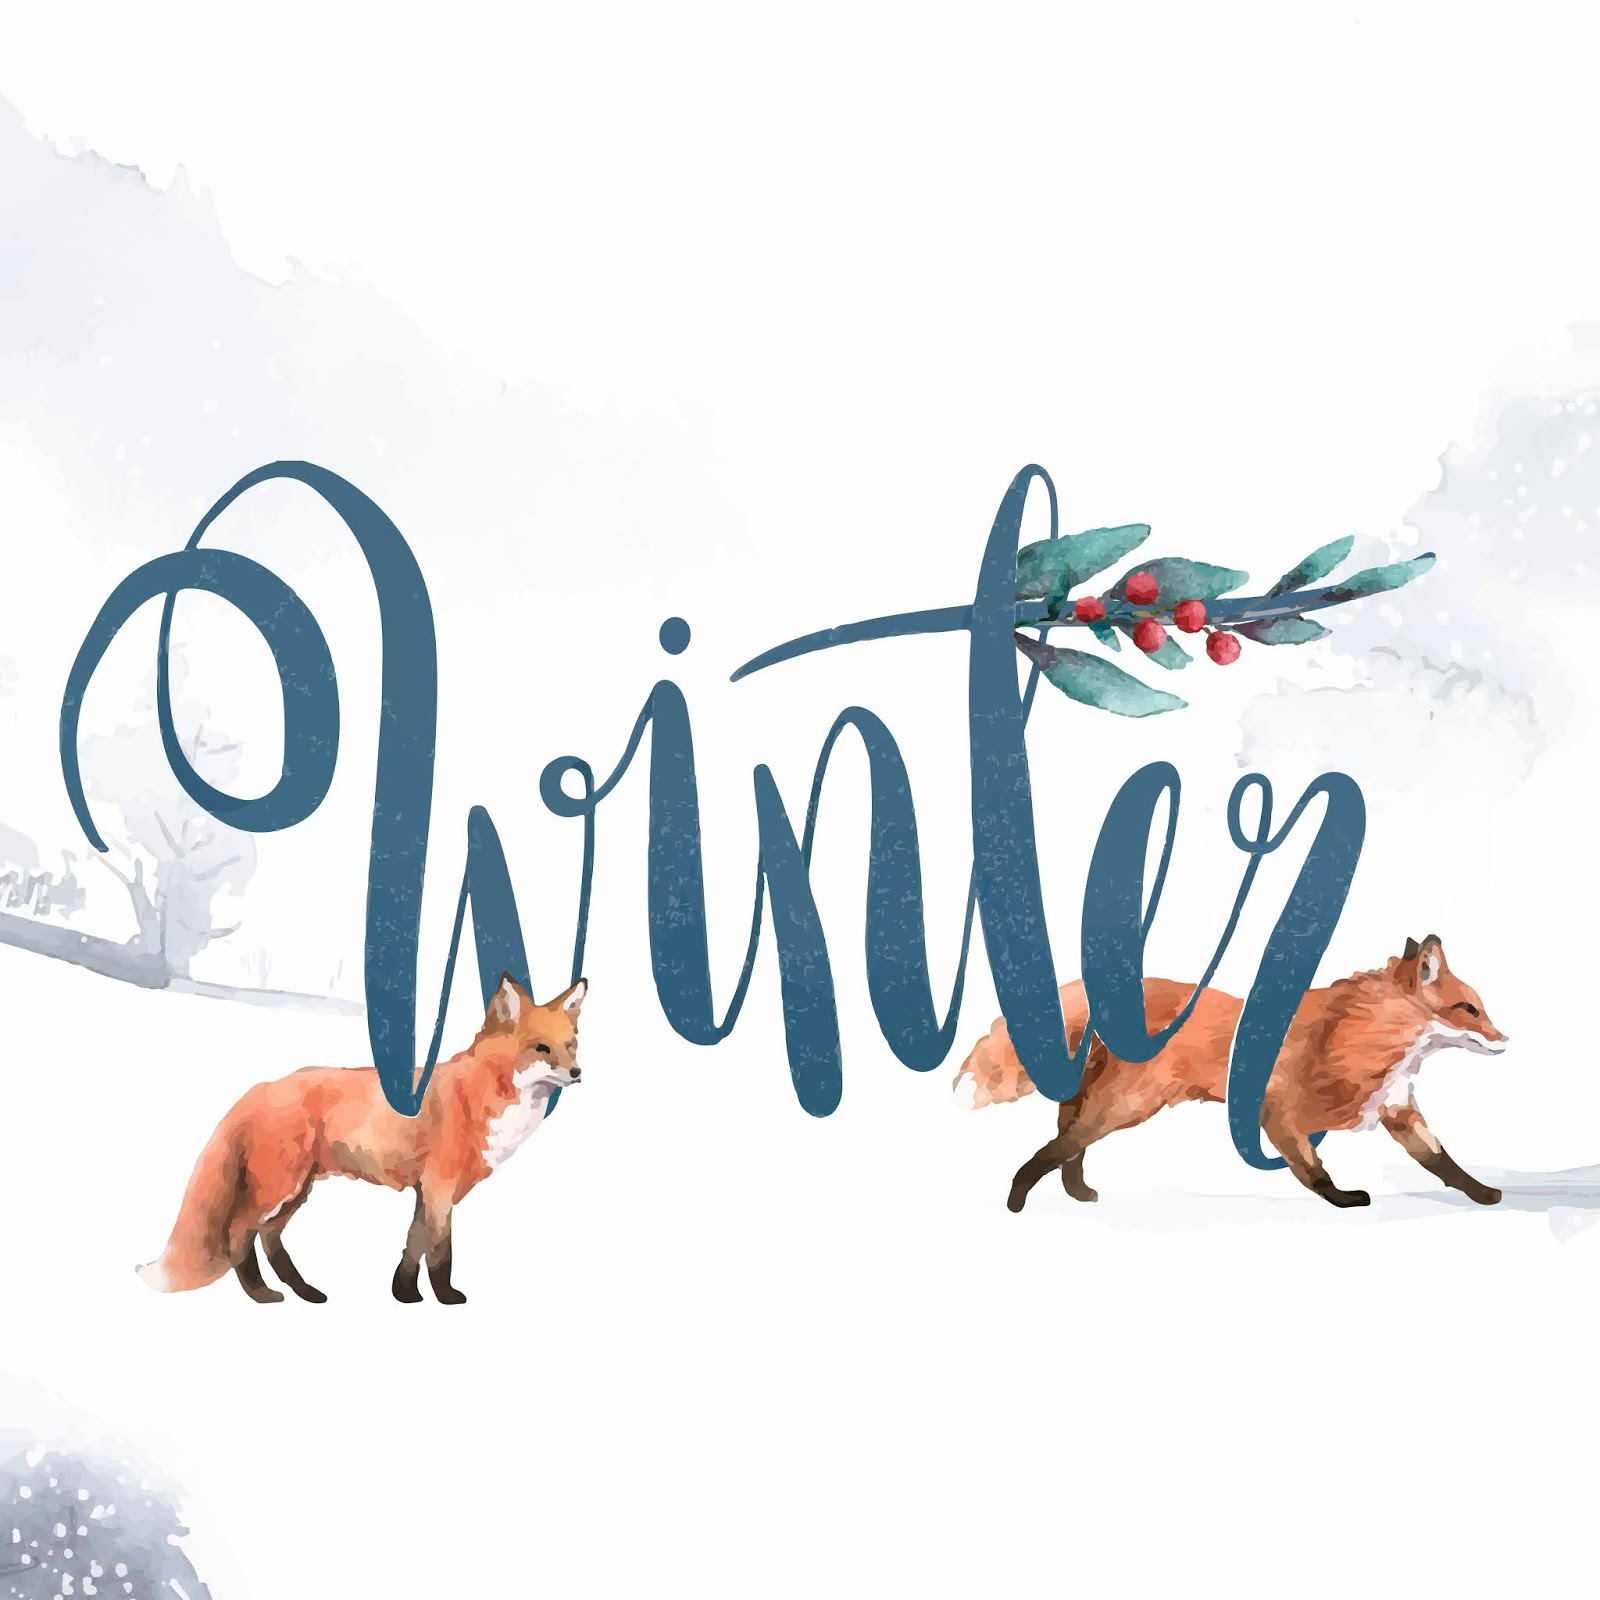 Winter Watercolor Style Typography Vector Free Download Vector CDR, AI, EPS and PNG Formats